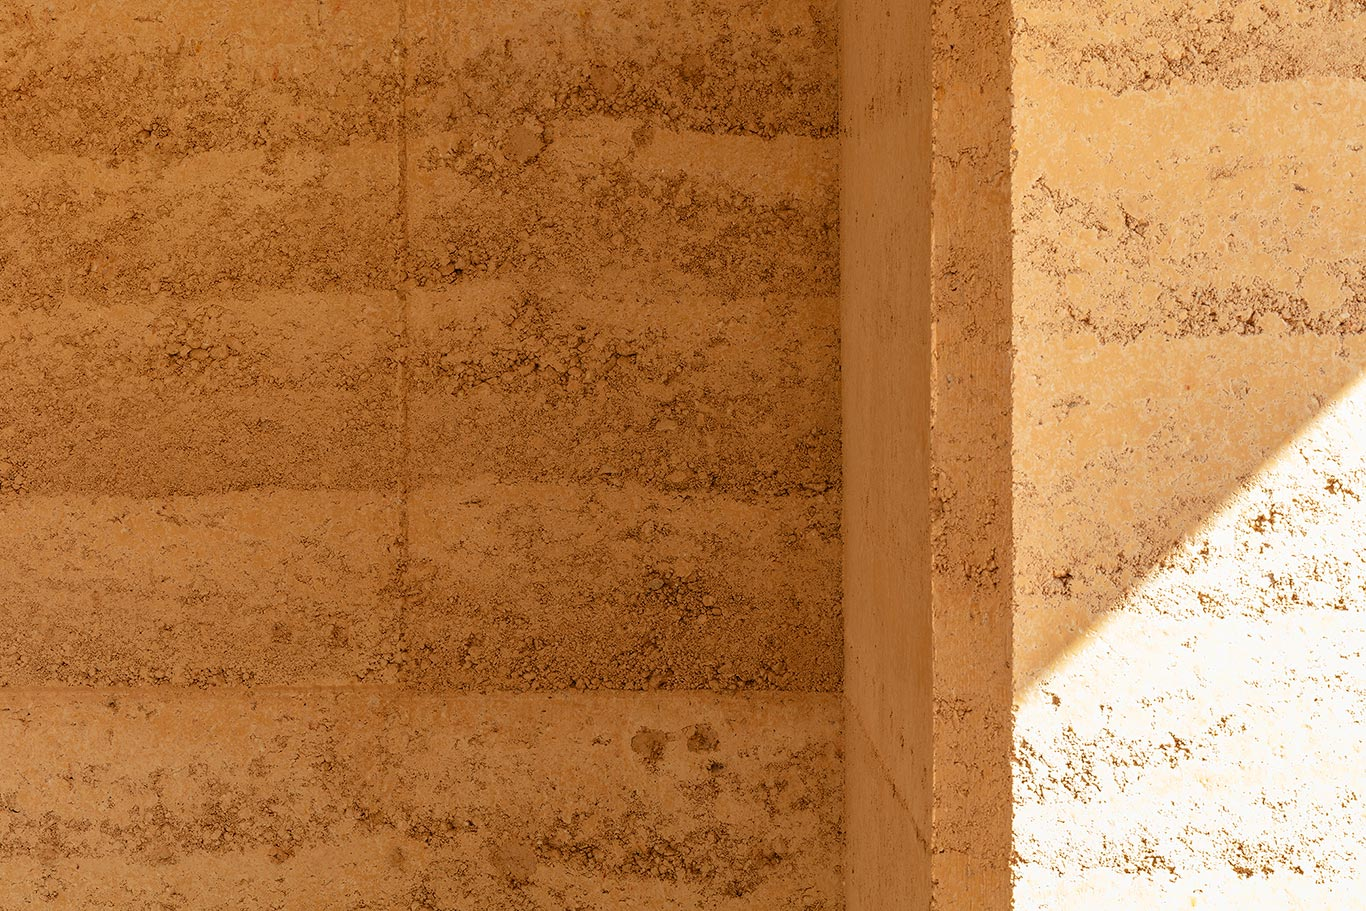 rammed earth wall close-up